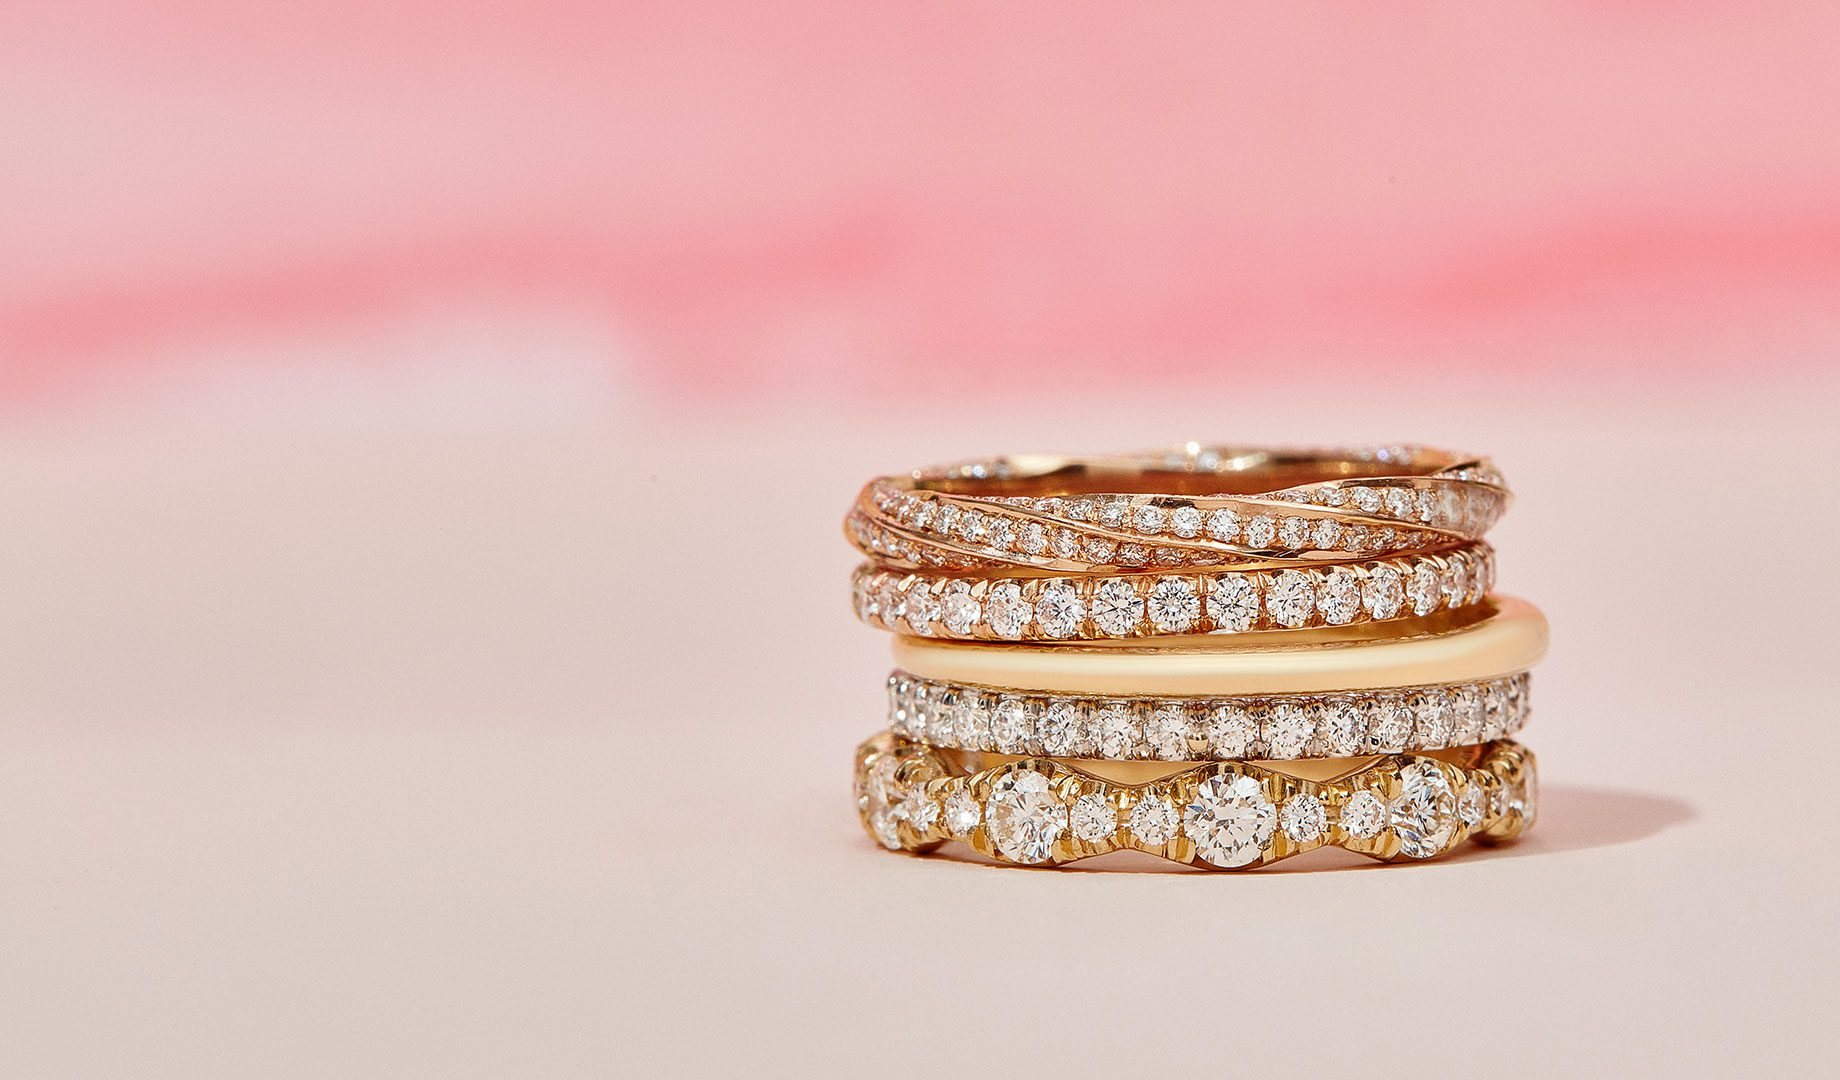 Women's Wedding Band Mixed Metals Product Stack on Pink Background